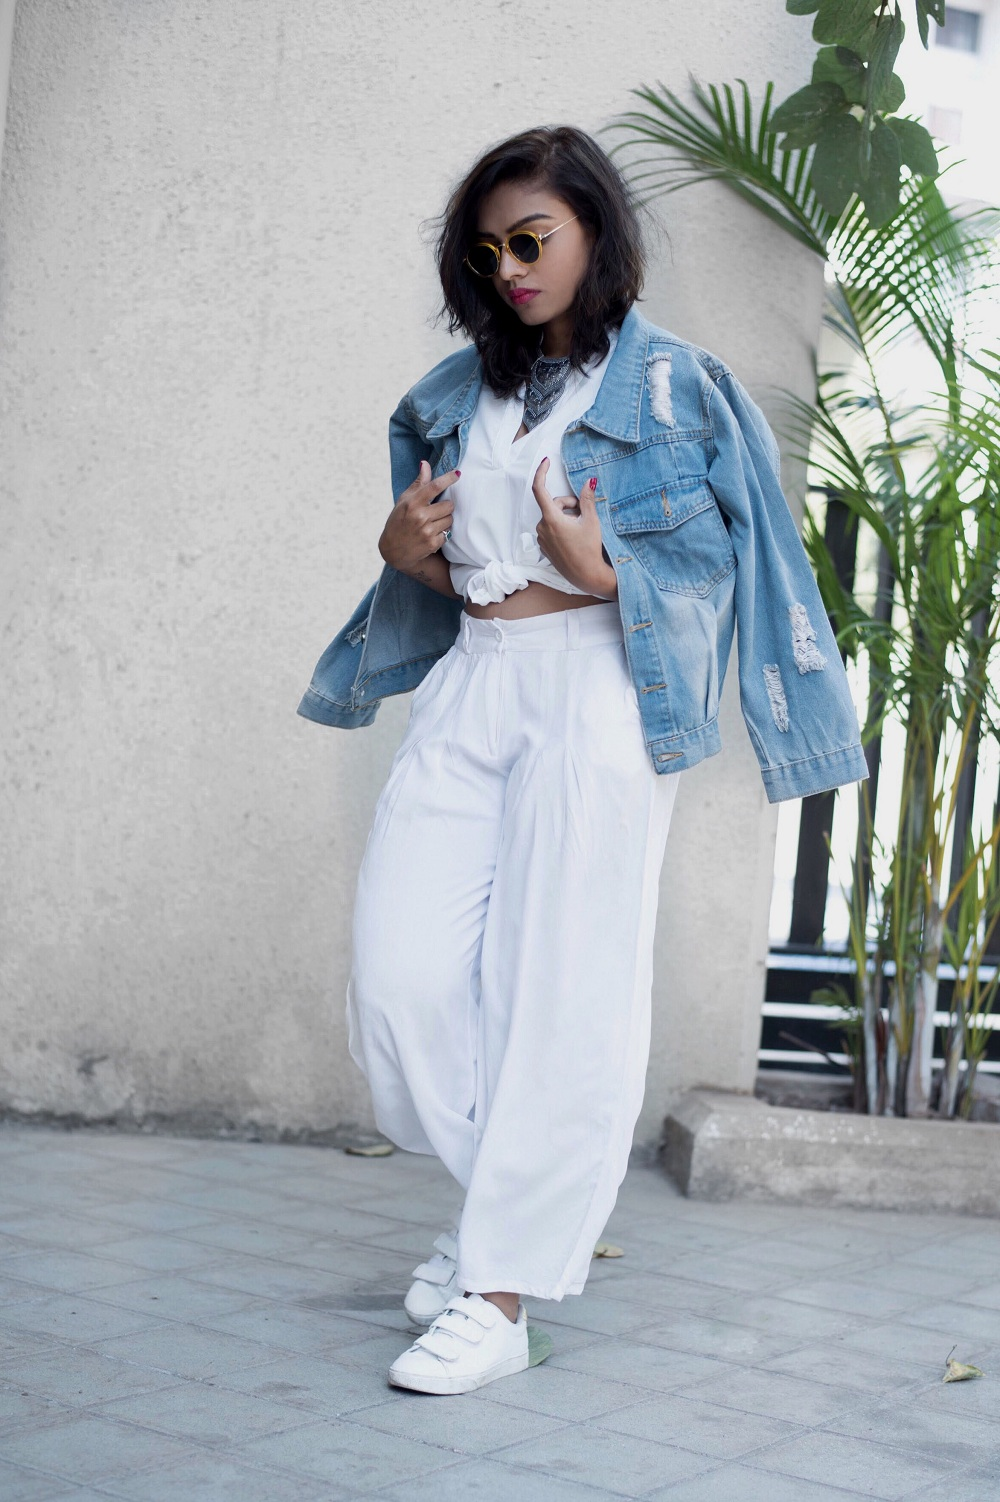 e626f2555f4 Ways to style your white shirt and denim jacket